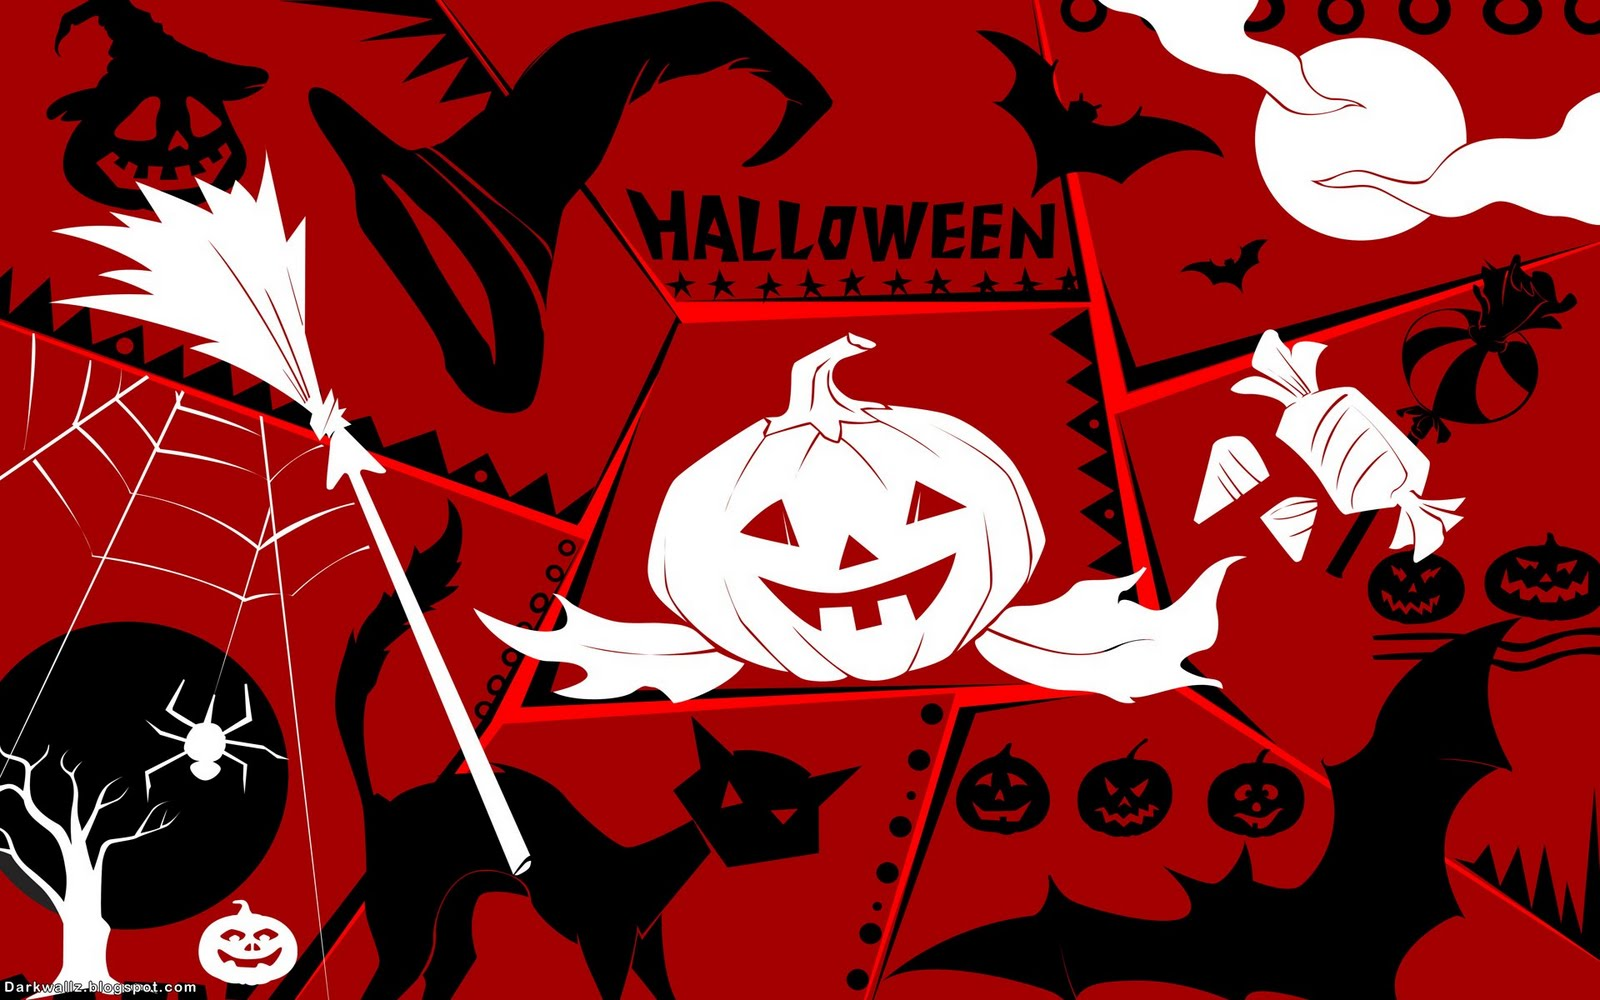 Halloween Wallpapers 43 | Dark Wallpaper Download